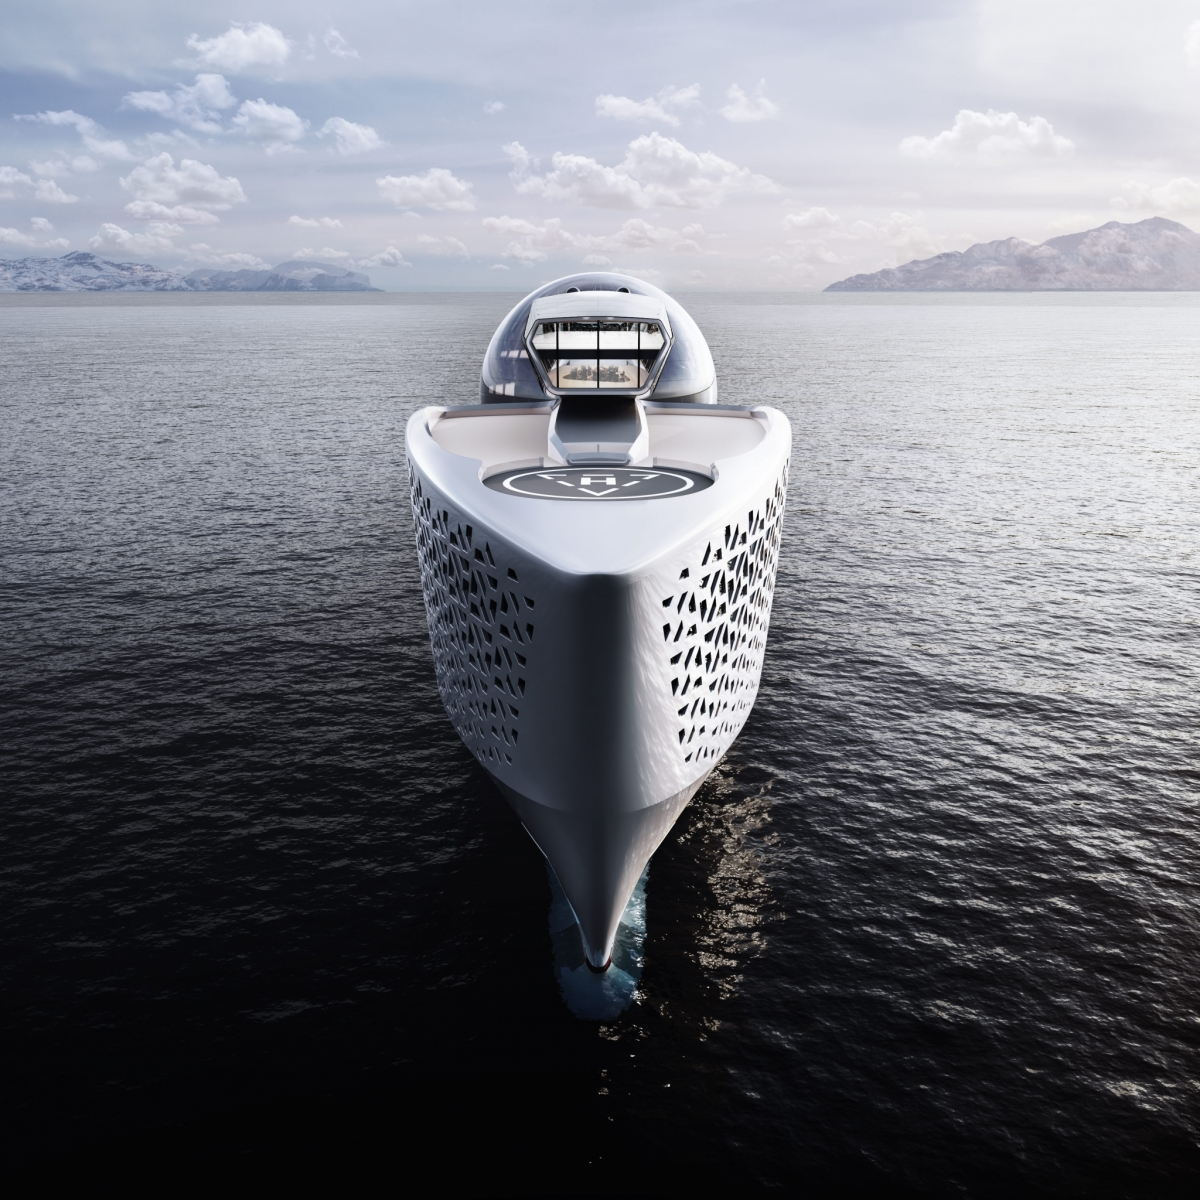 Earth 300 Nuclear Powered Superyacht for Scientific Research